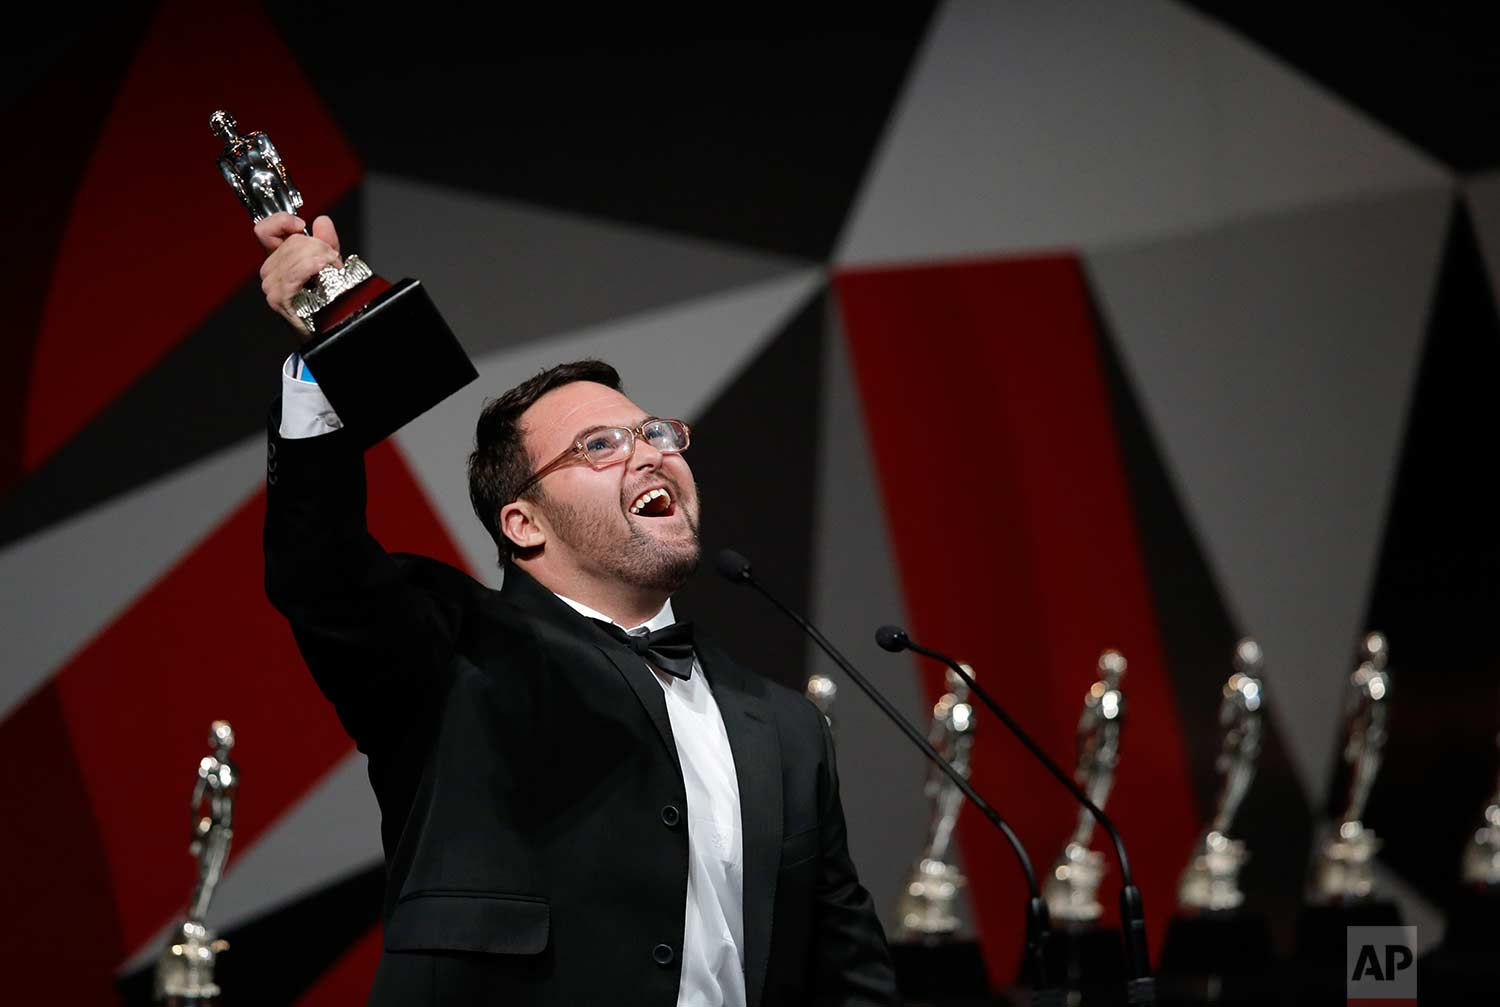 """Paco de la Fuente celebrates after he was presented with the best new actor award for his performance in """"El alien y yo"""", at the 59th Ariel Awards ceremony at the Palacio de Bellas Artes in Mexico City, Tuesday, July 11, 2017. (AP Photo/Rebecca Blackwell)"""